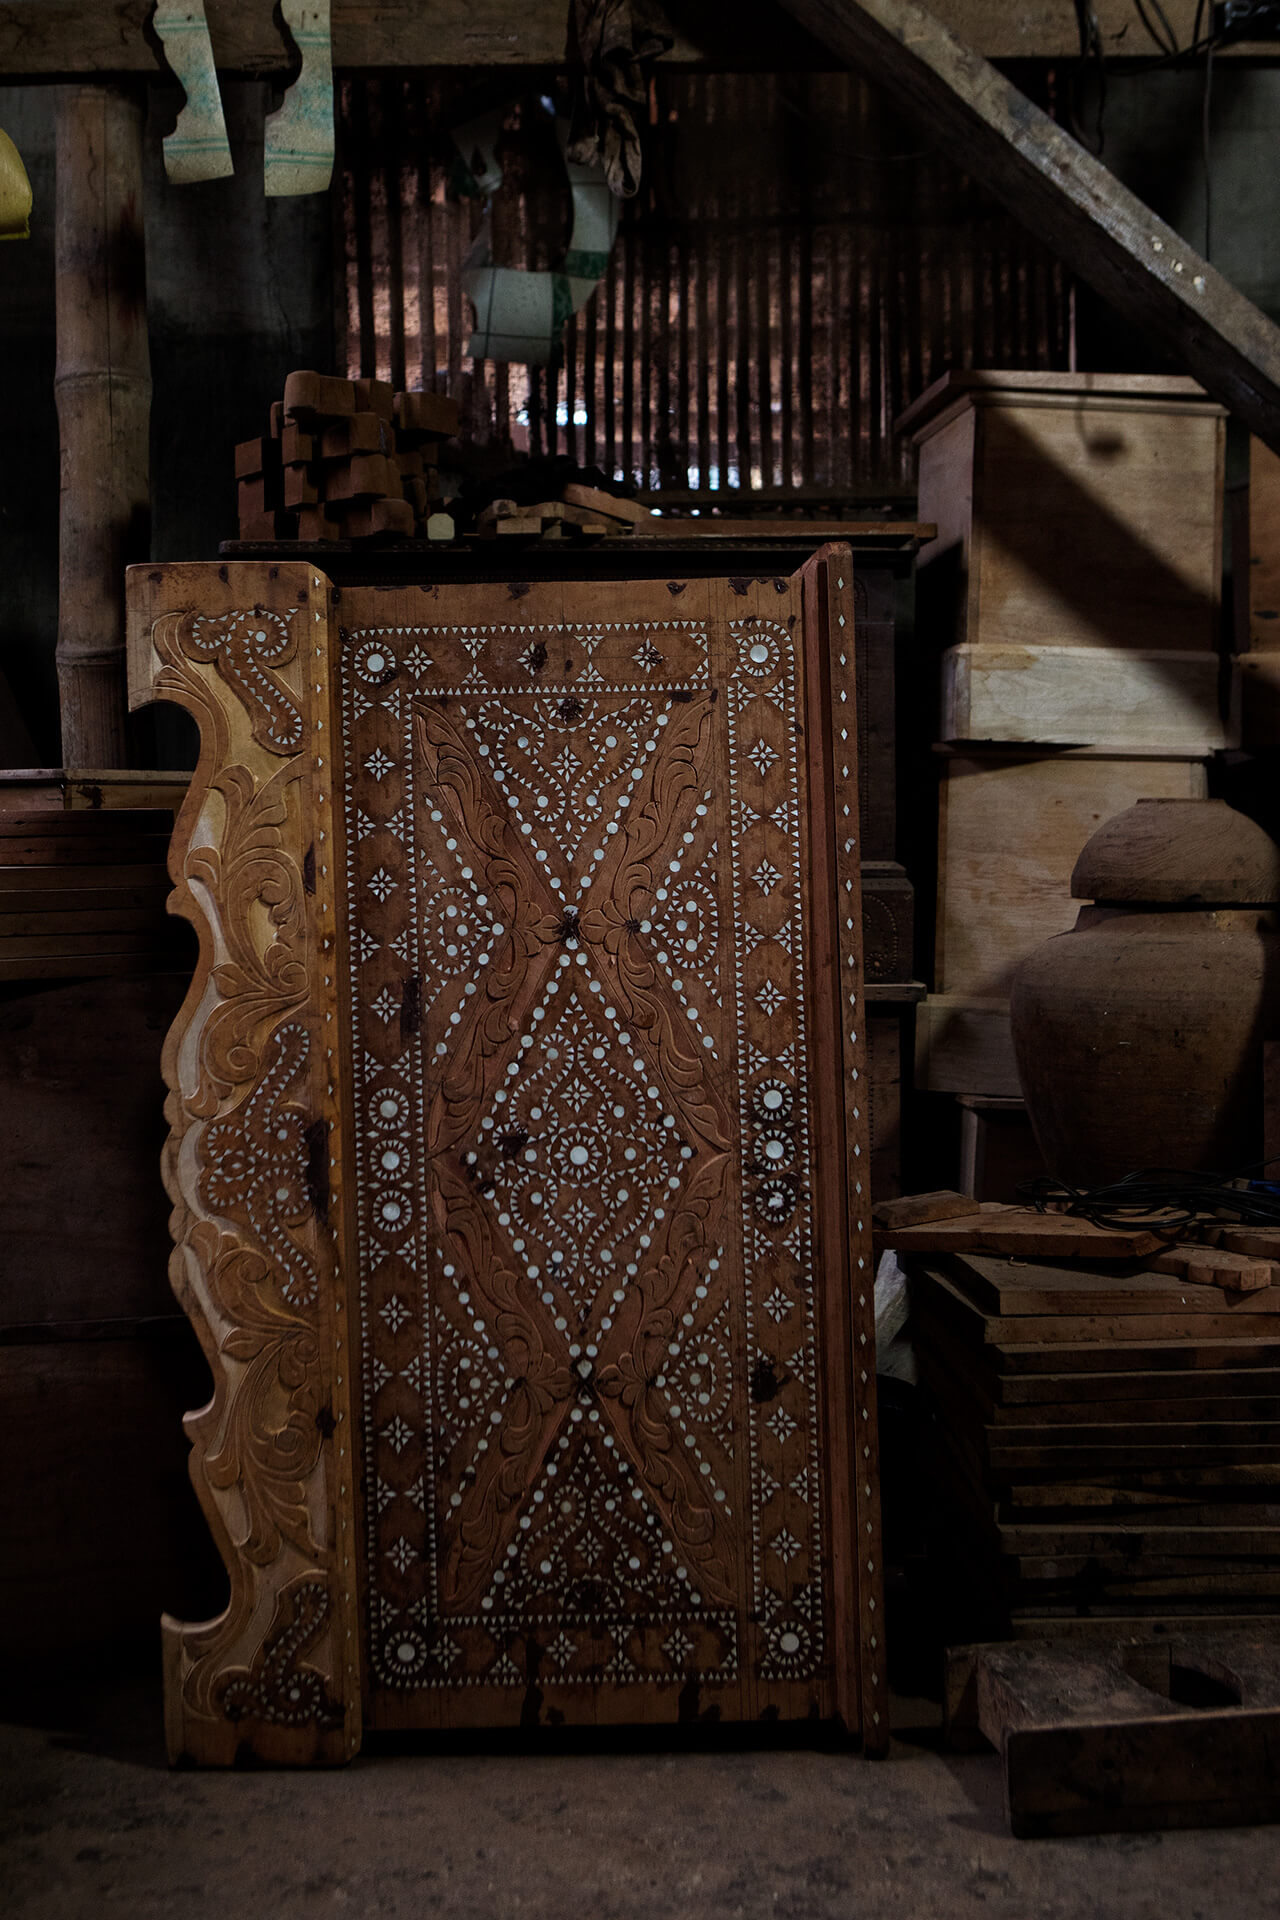 A large cabinet with mother-of-pearl inlays tracing the intricate okir patterns